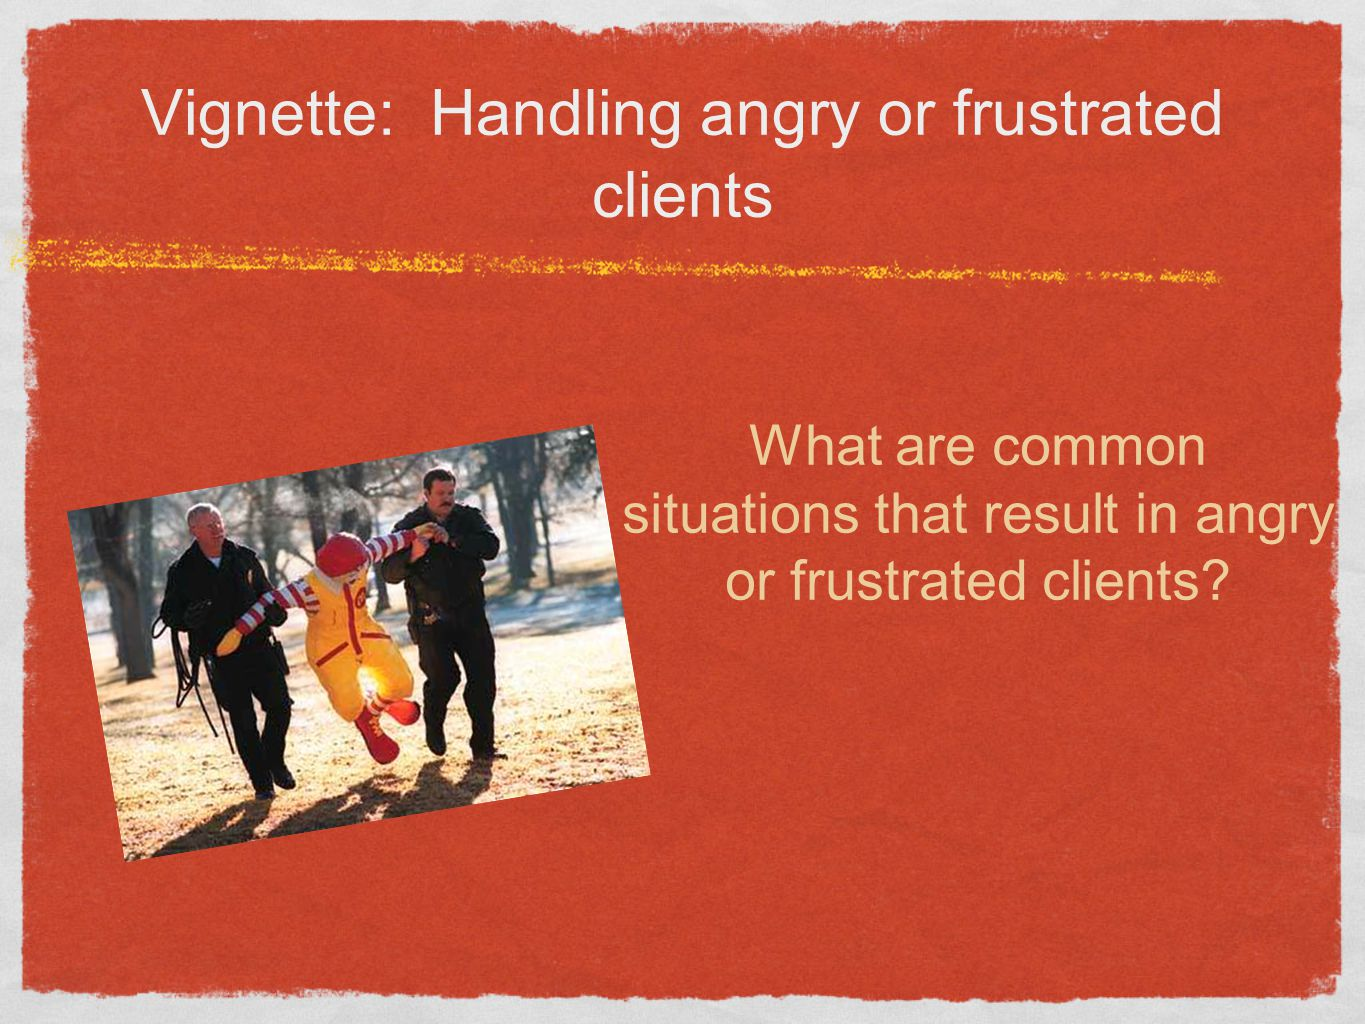 Vignette: Handling angry or frustrated clients What are common situations that result in angry or frustrated clients